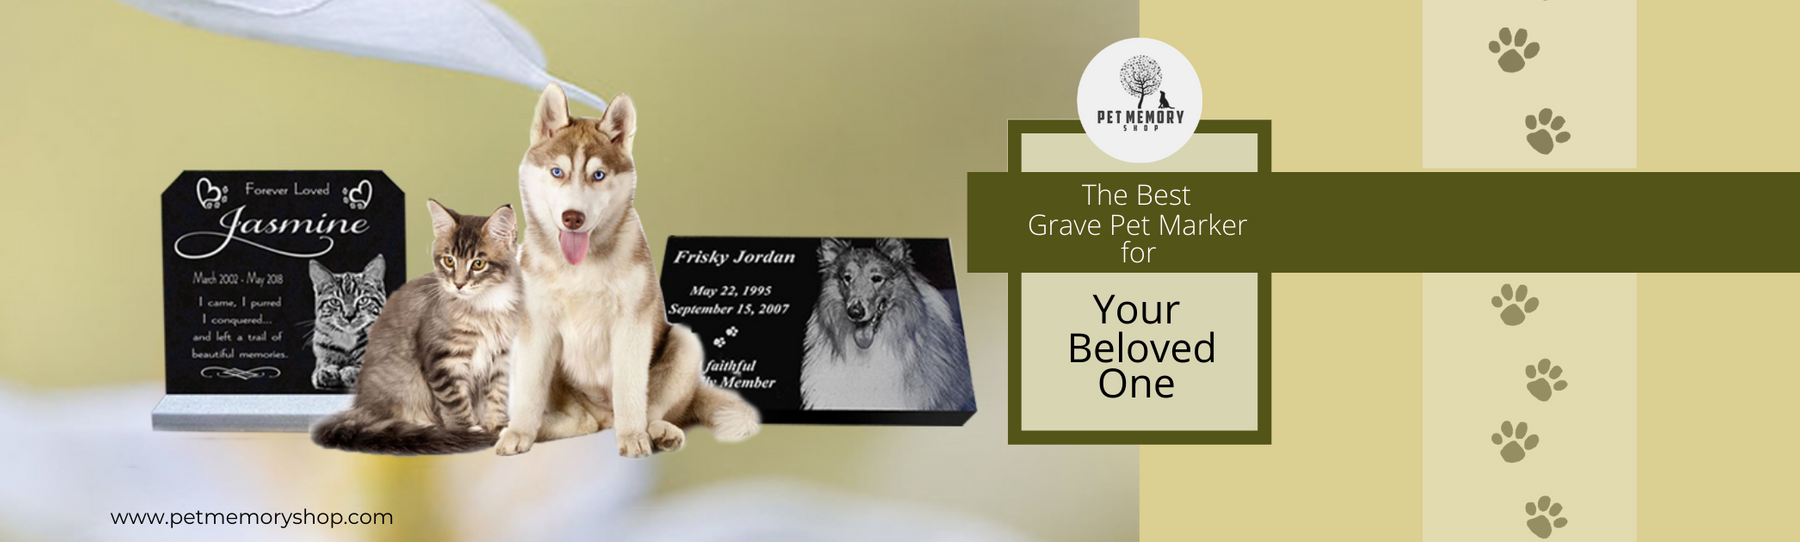 The Best Grave Pet Marker for Your Beloved One